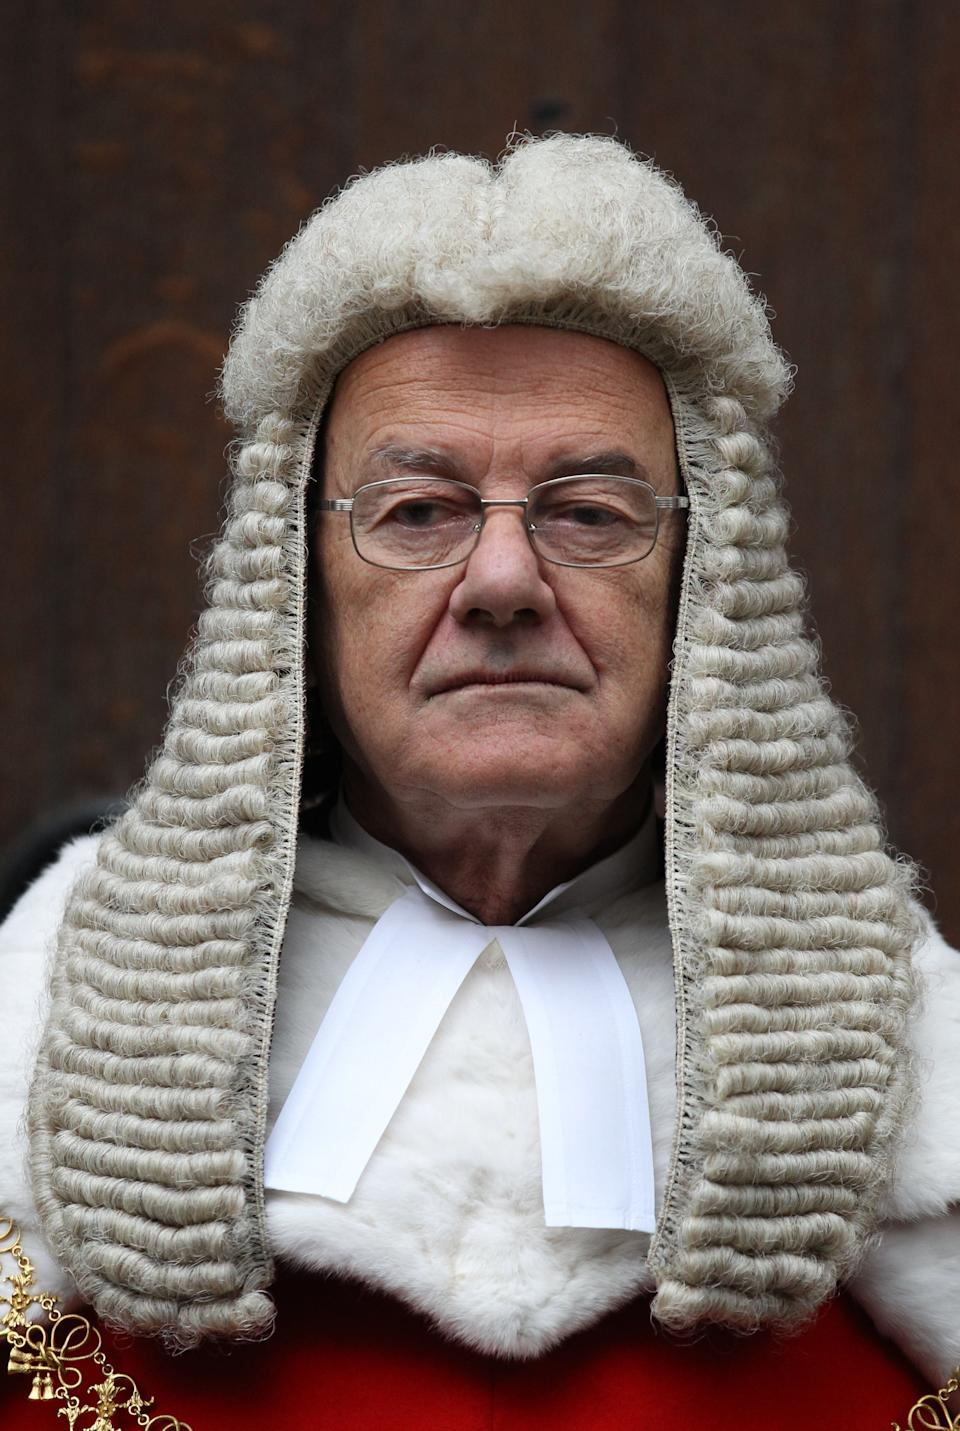 Lord Chief Justice Lord Judge, following the swearing in of the new Lord Chancellor MP Chris Grayling and Master of the Rolls, Lord Dyson, at The Royal Courts of Justice,The Strand, London.   (Photo by Lewis Whyld/PA Images via Getty Images)